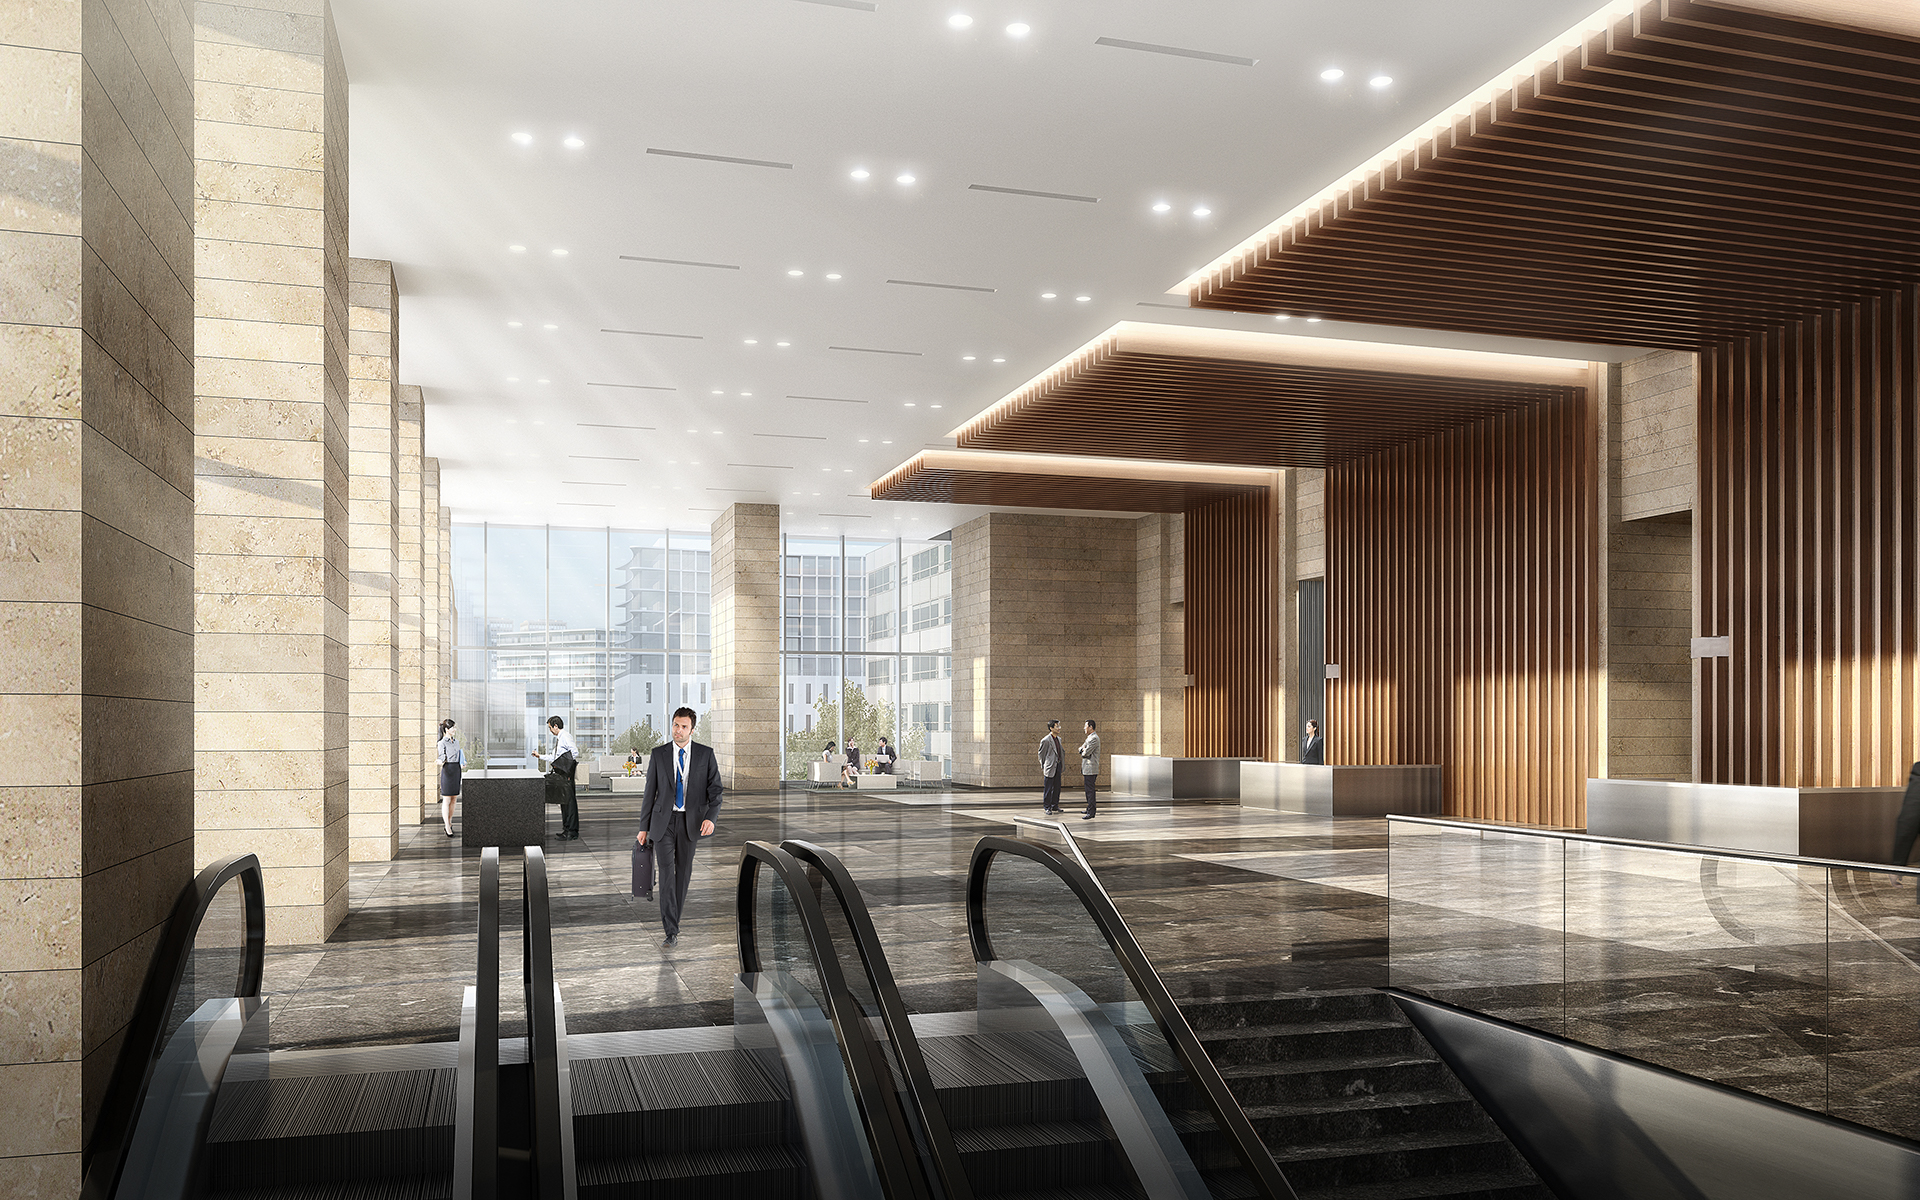 CG rendering of the completed office lobby